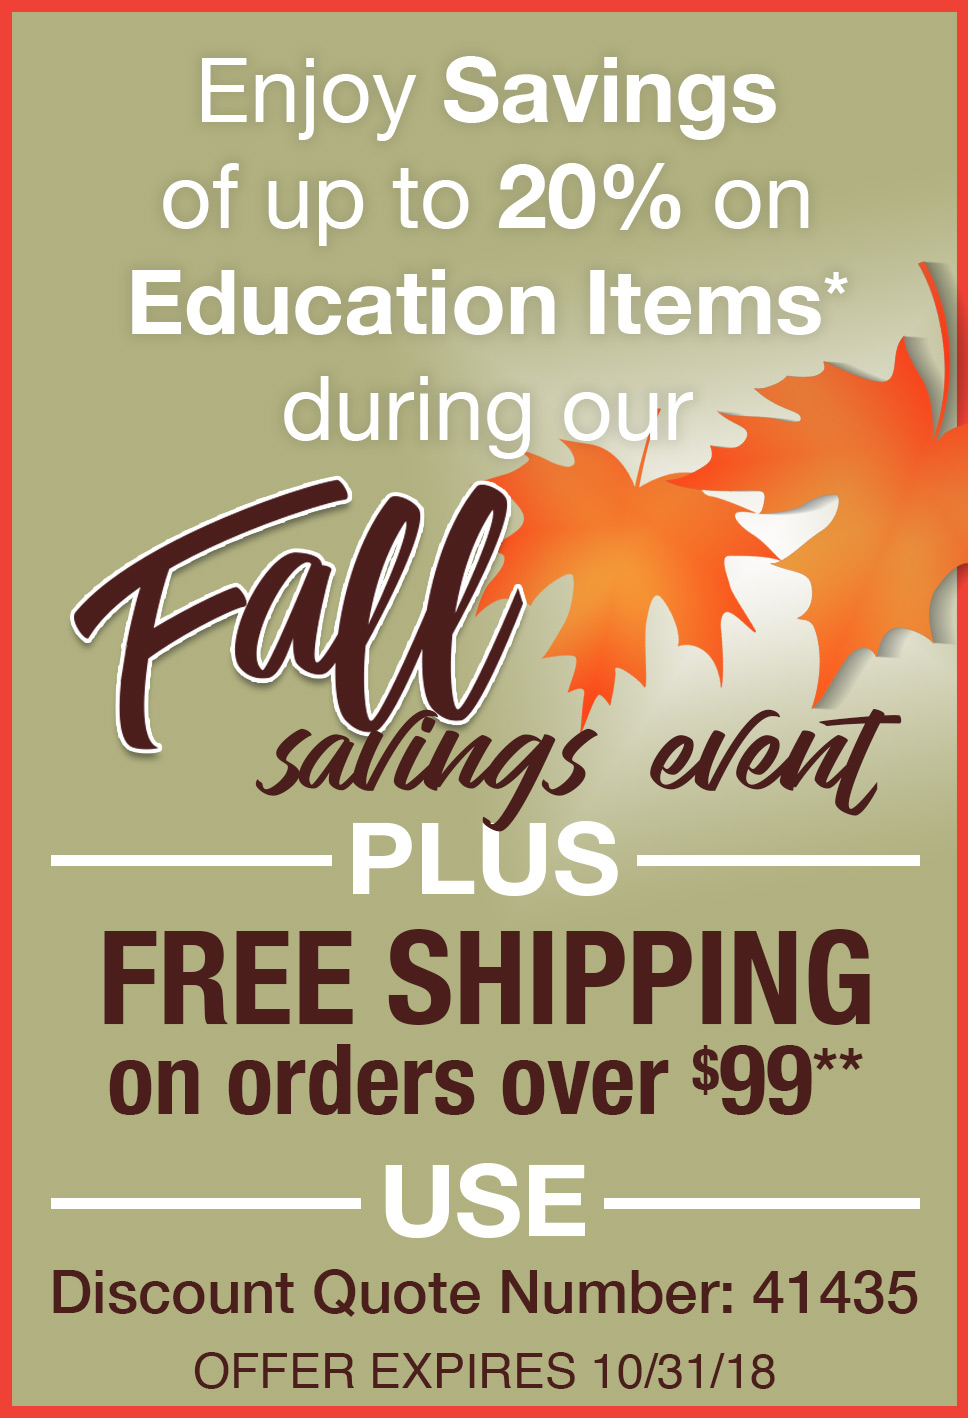 Fall Savings Event - Save Up To 20% on Education Items Plus Free Shipping on Orders over $99